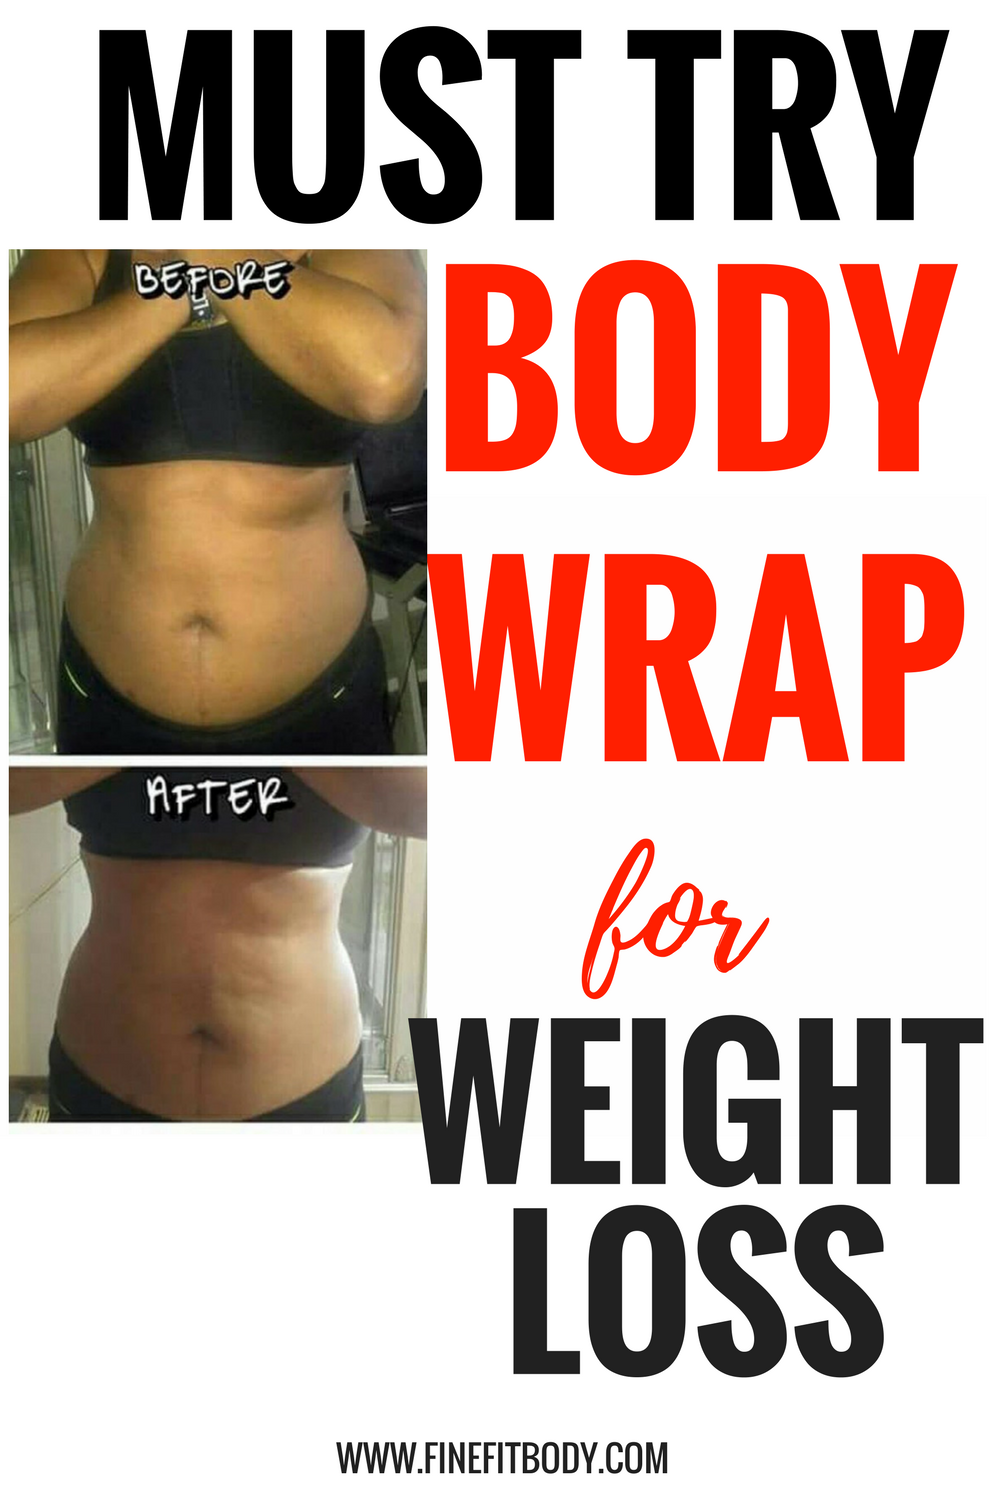 This body wrap for weight loss is amazing! It helps you lose weight in a week and have a flat belly. I love my before and after results from using this body wrap!